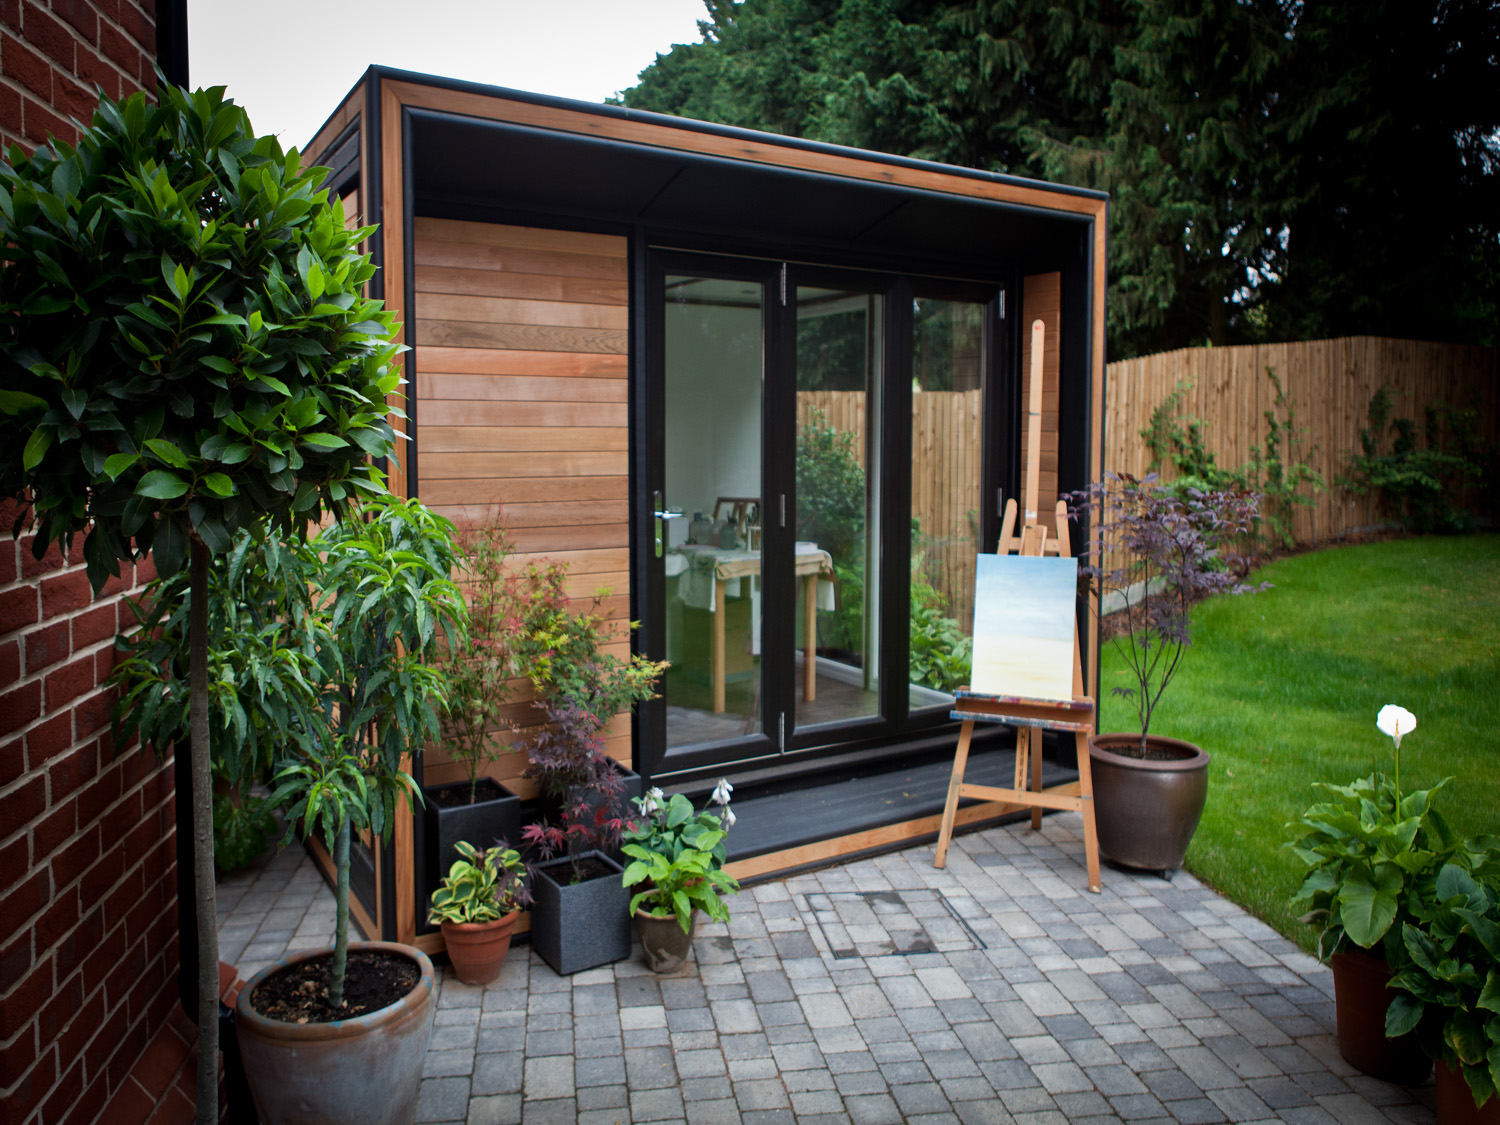 Smart garden offices the solo ultra for Garden office ideas uk